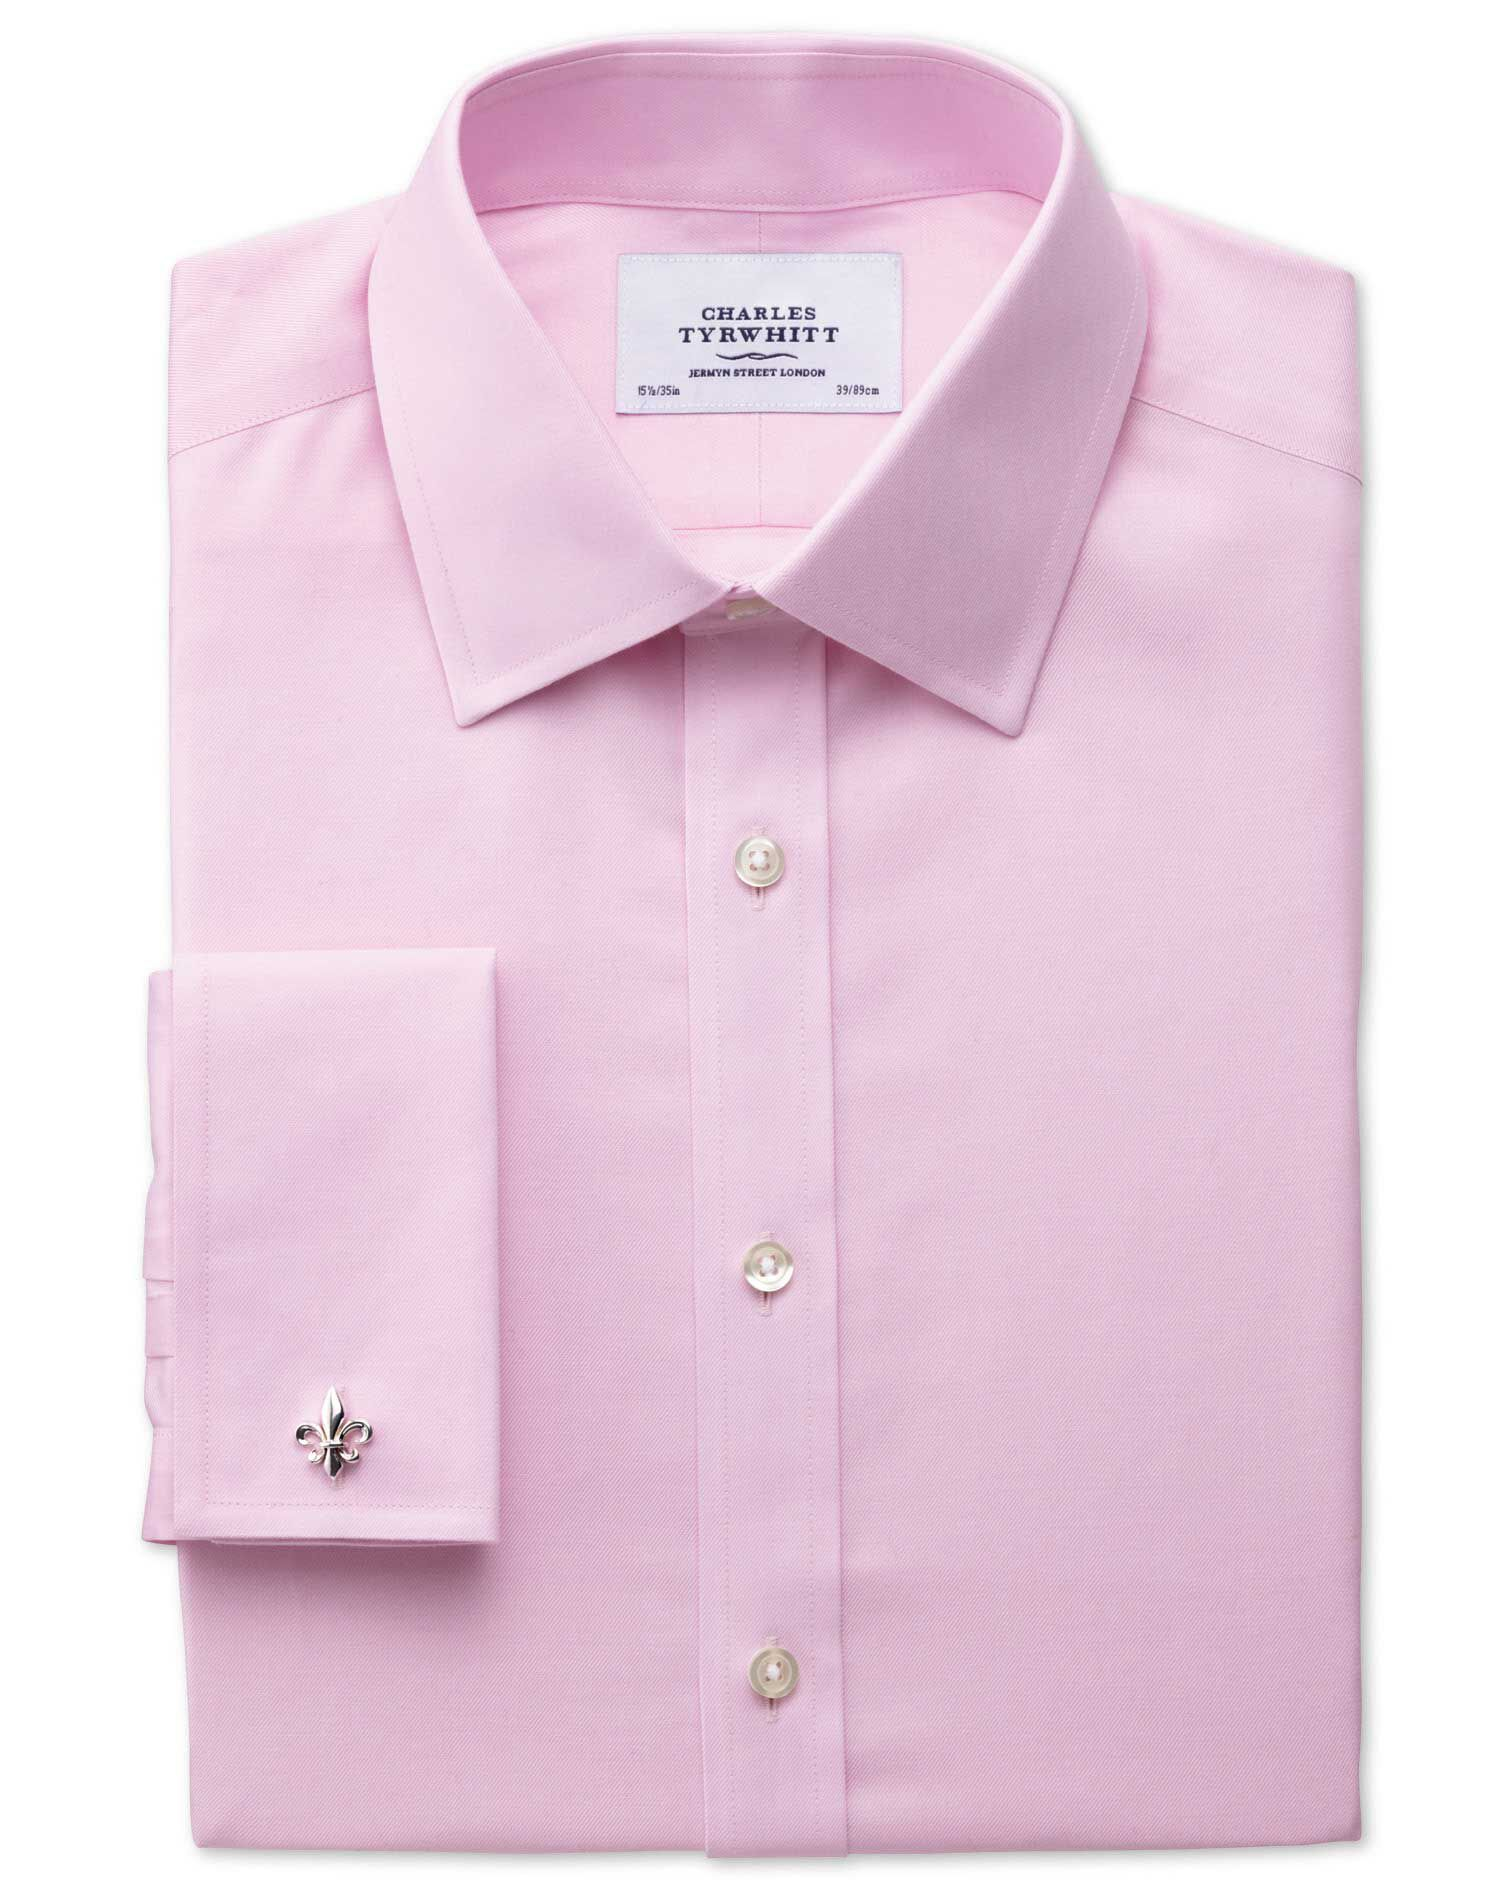 Extra Slim Fit Non-Iron Twill Pink Cotton Formal Shirt Single Cuff Size 16/38 by Charles Tyrwhitt